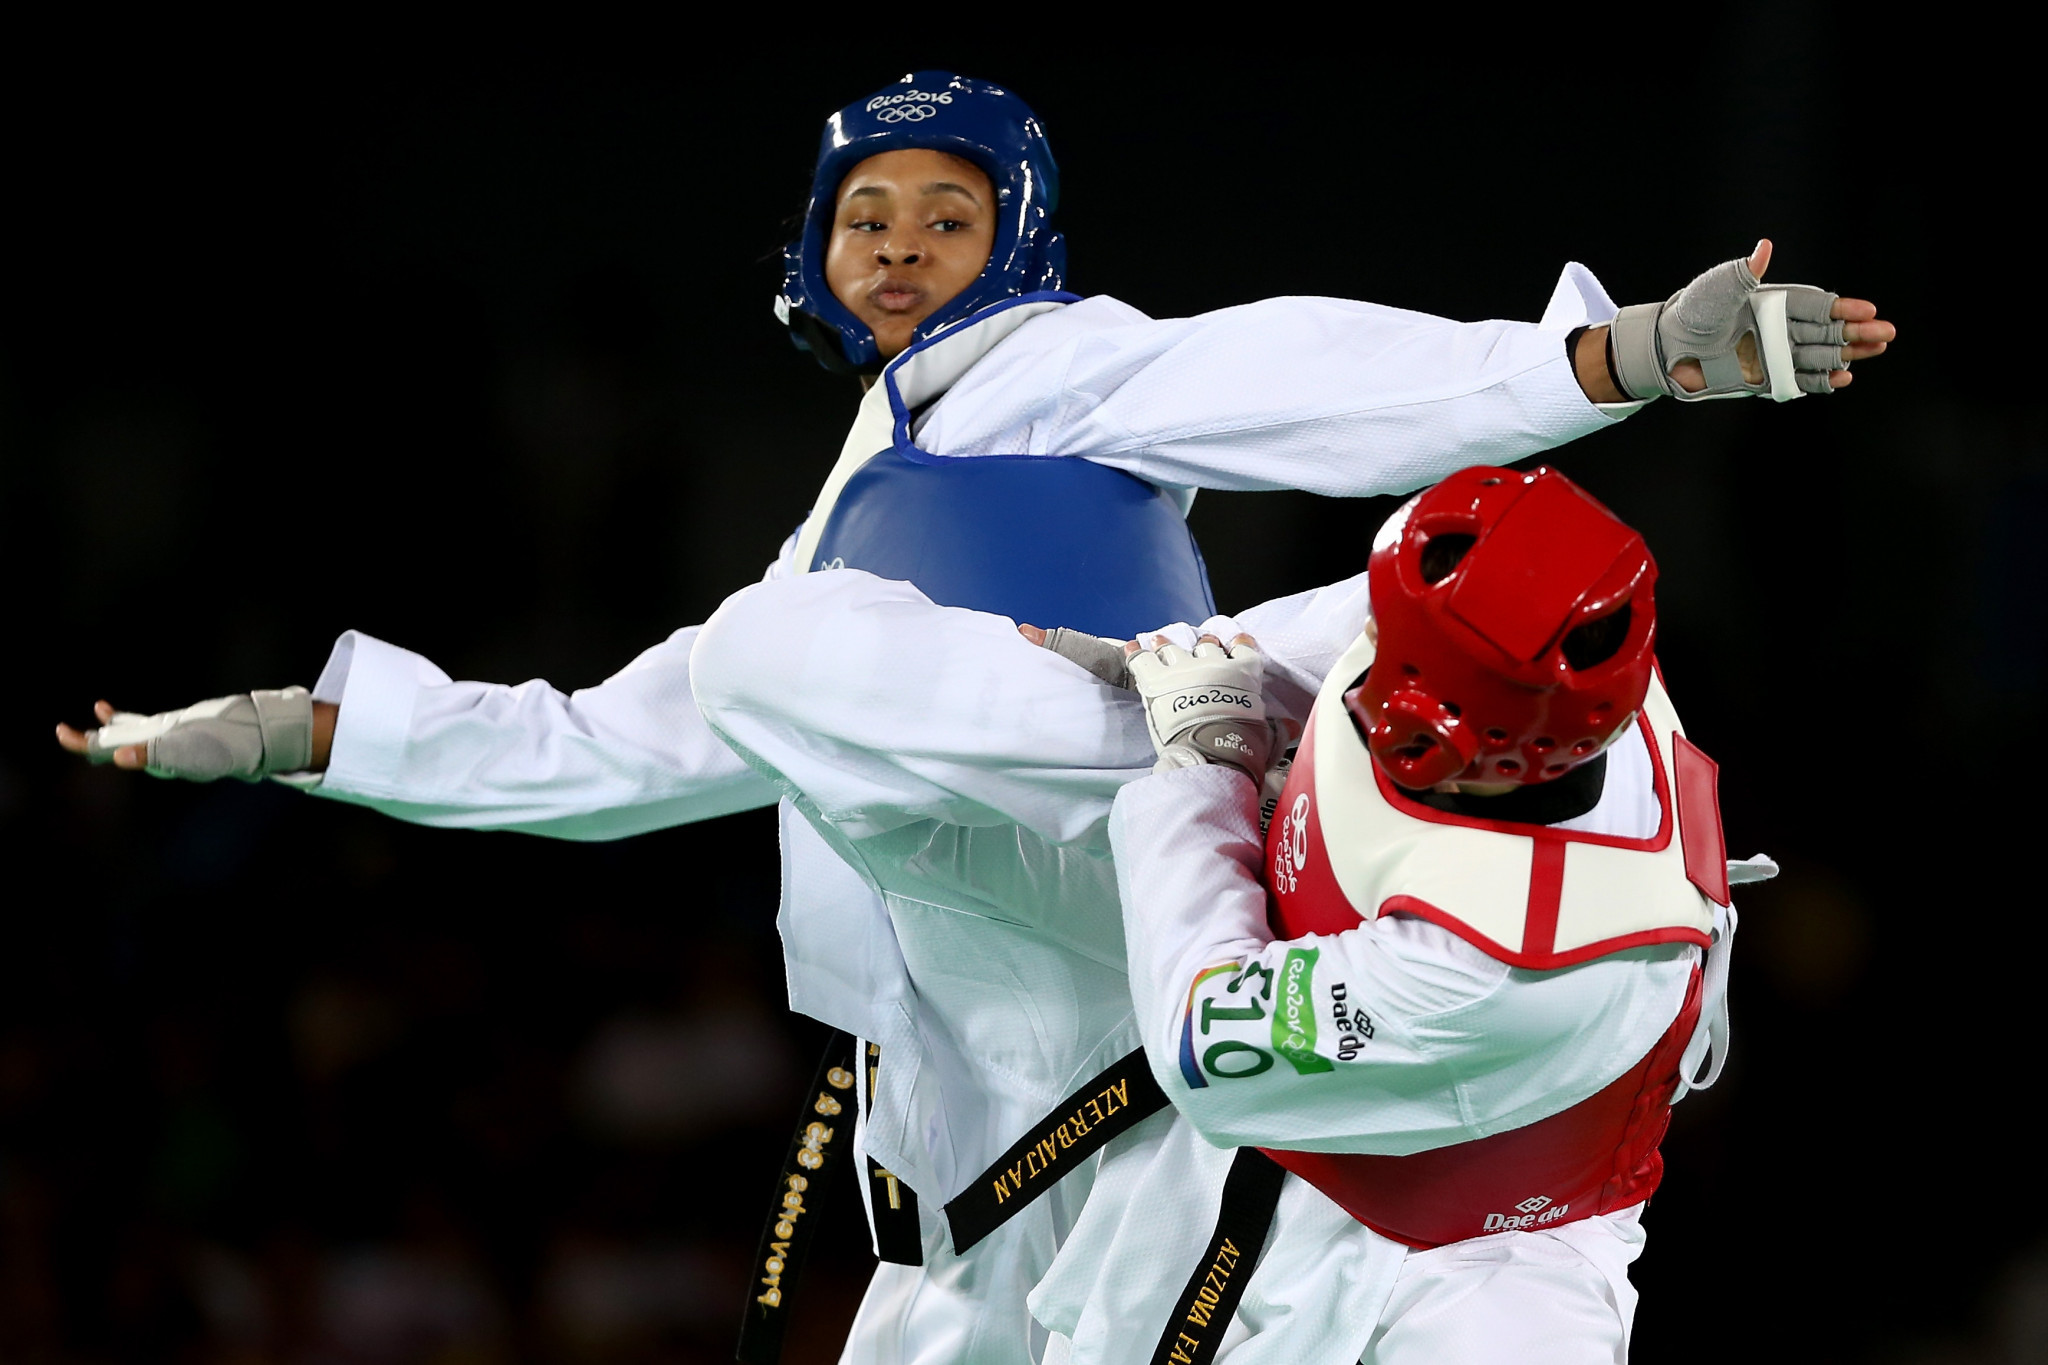 USA Taekwondo finalises team for Lima 2019 Pan American Games